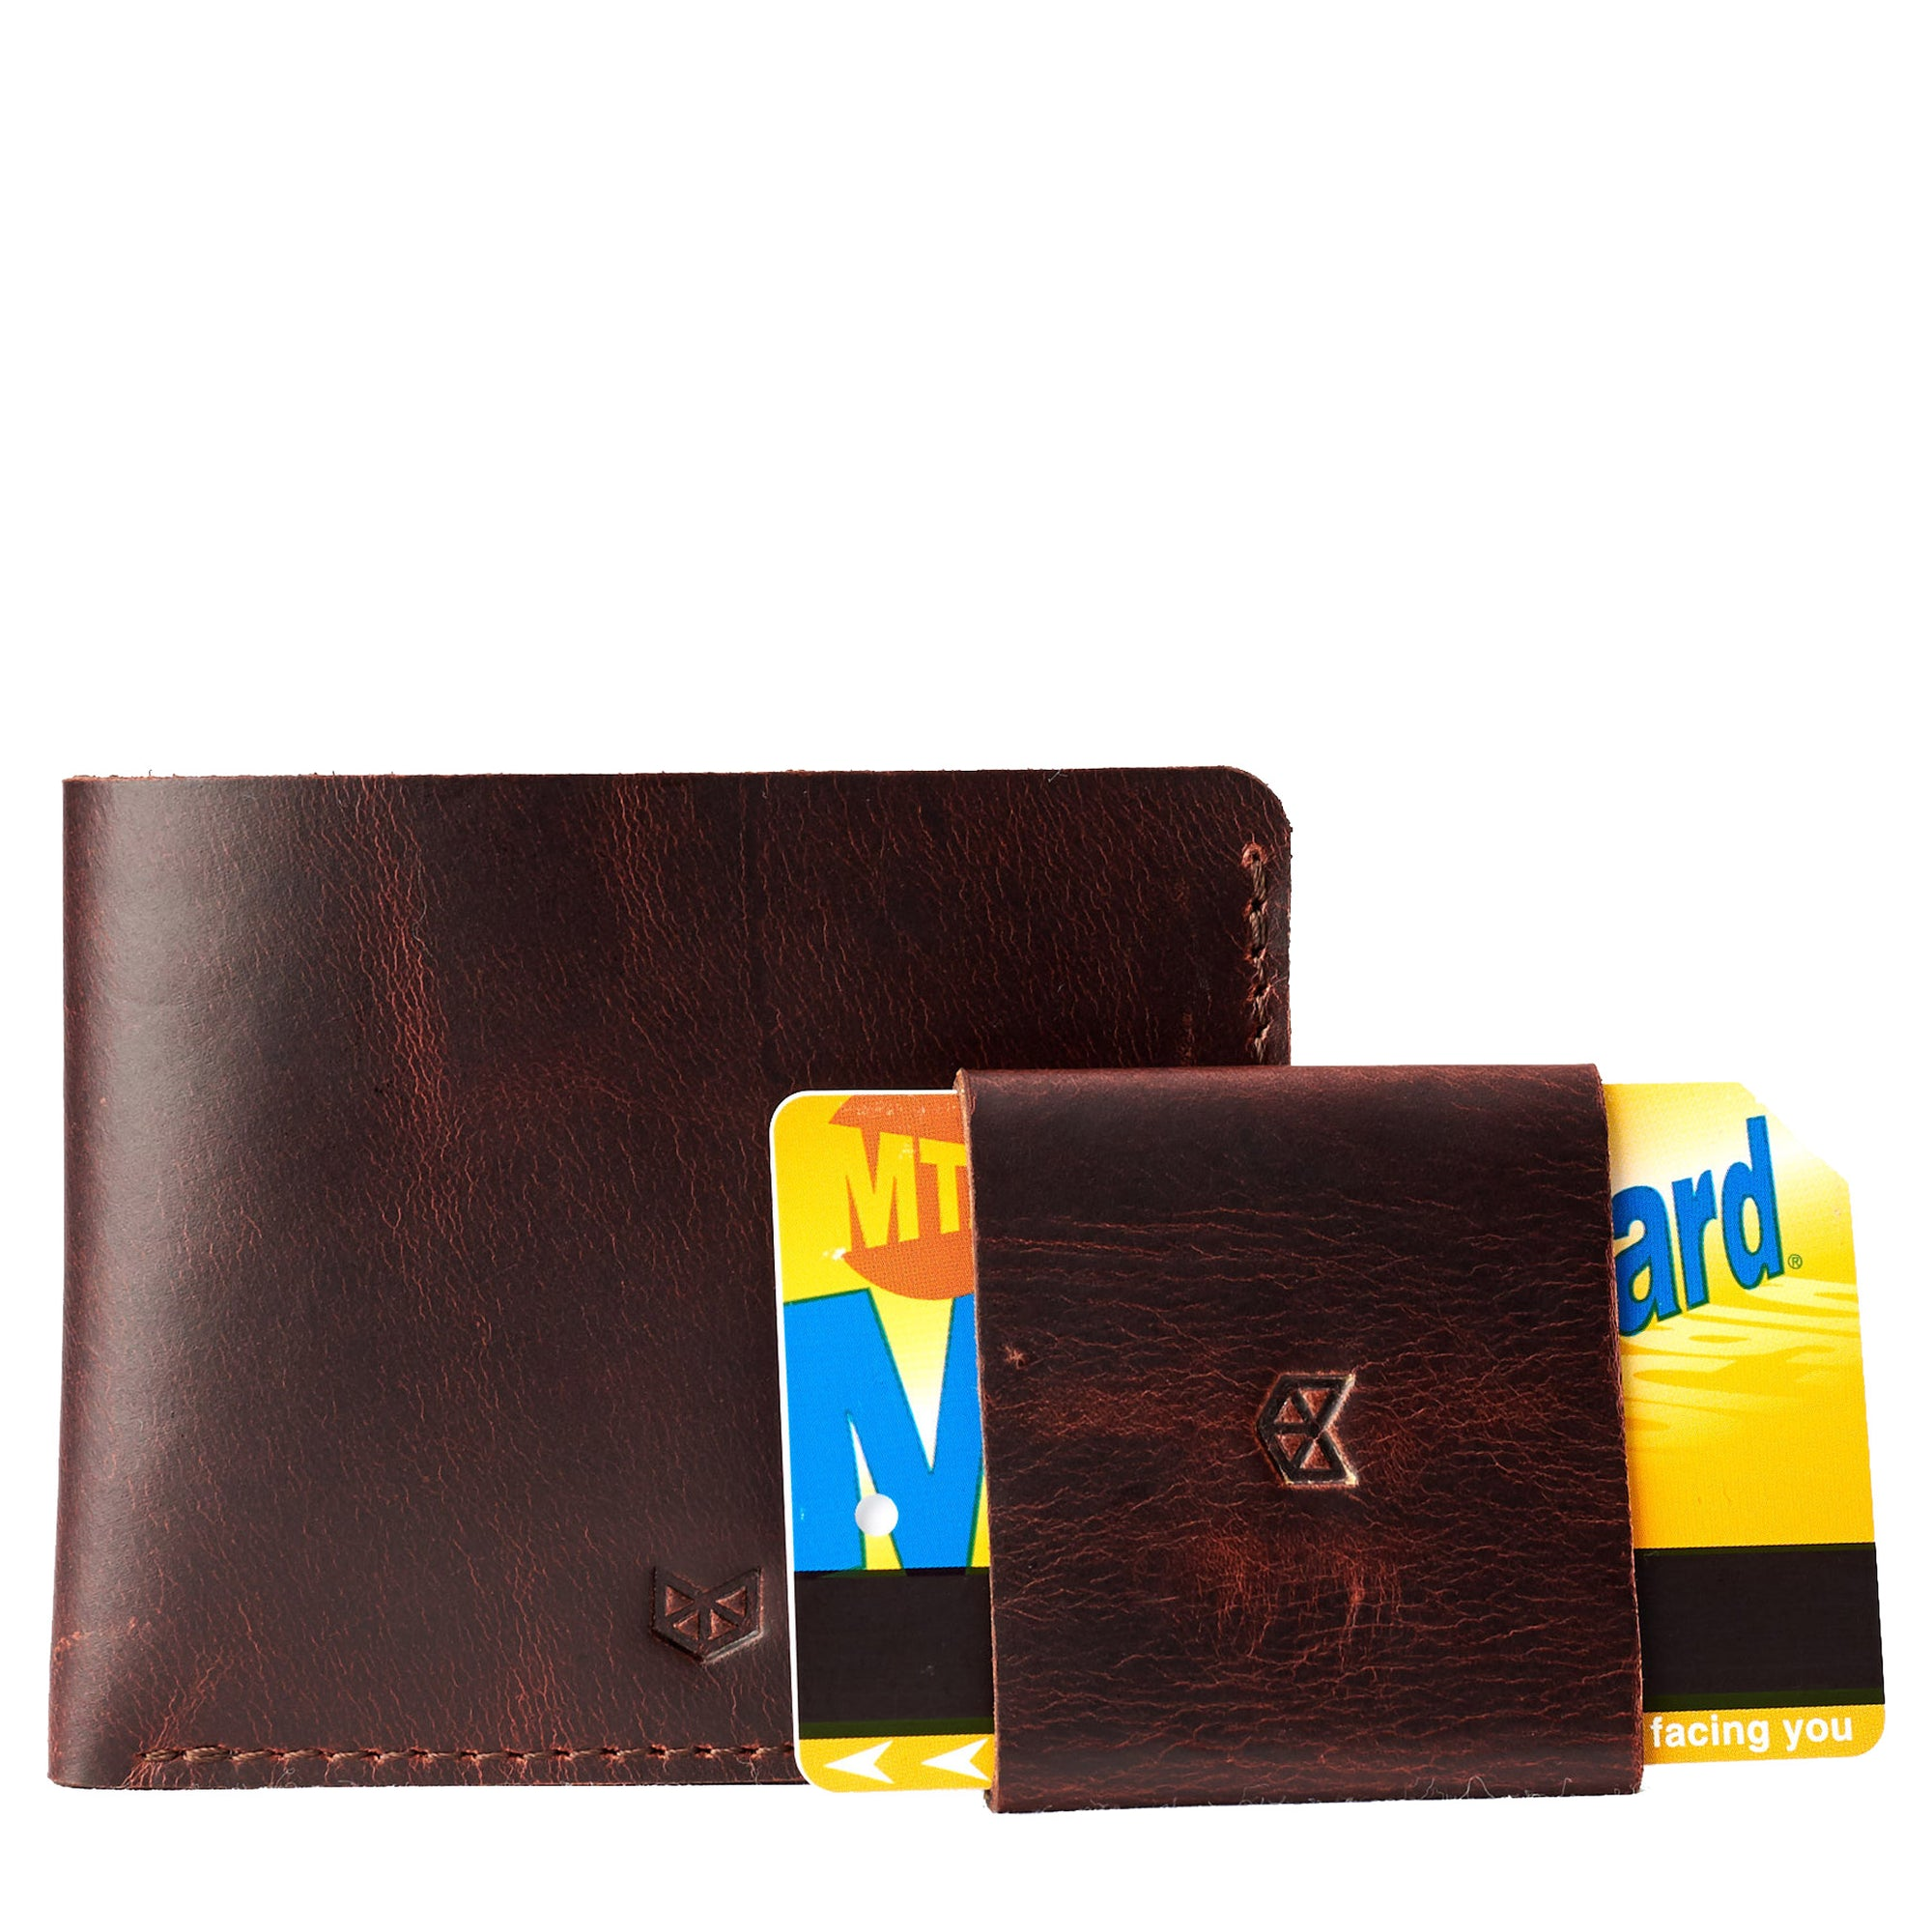 Wallet kit. Leather coñac slim wallet gifts for men handmade accessories. minimalist full grain leather thin wallet. Made by Capra Leather.